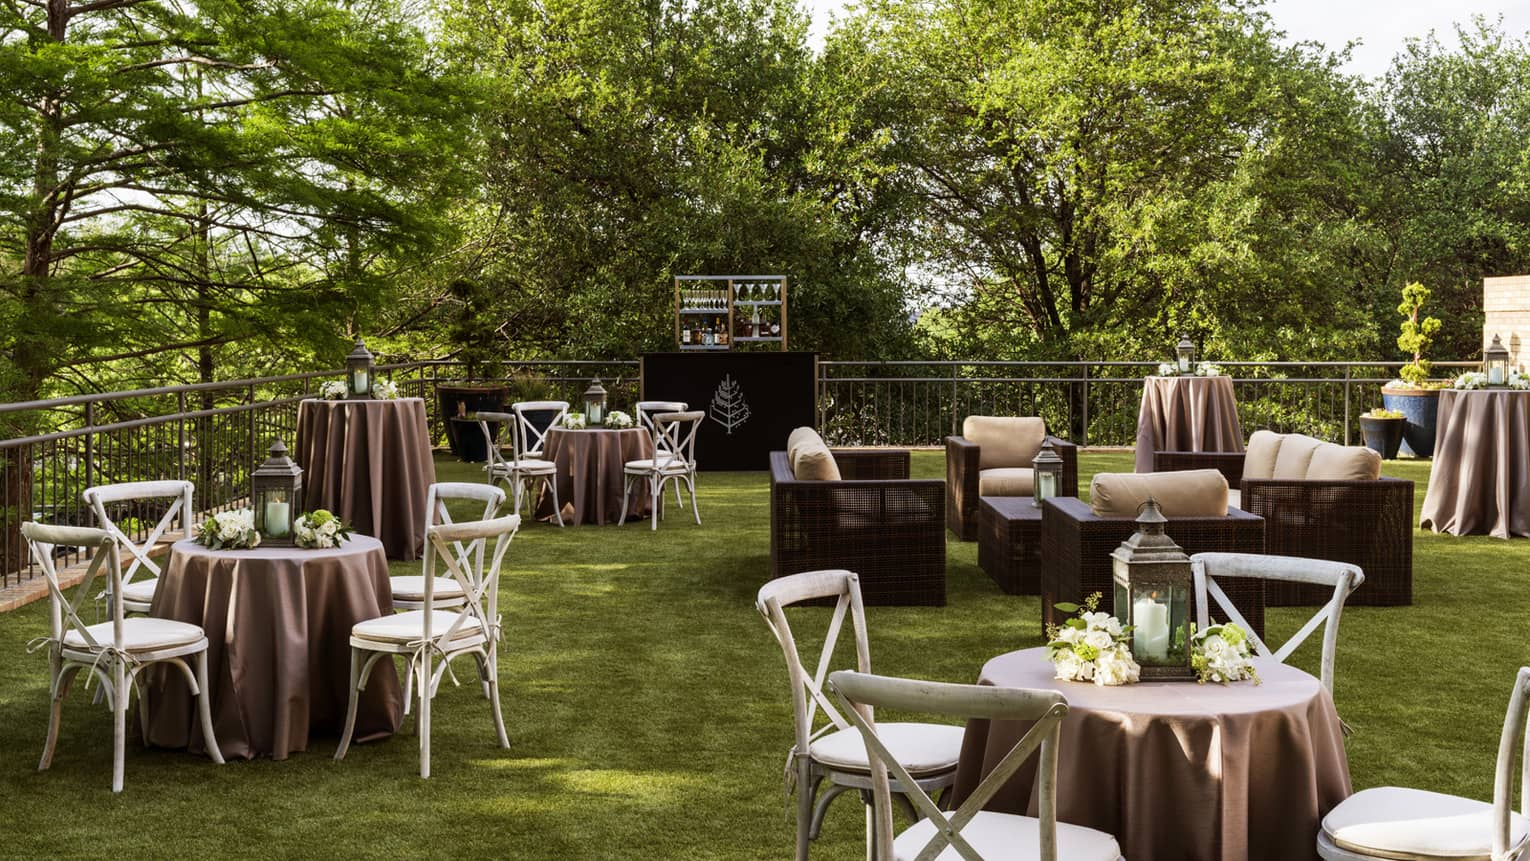 Small banquet tables, chairs on green lawn surrounded by trees in The Terrace Upper event space